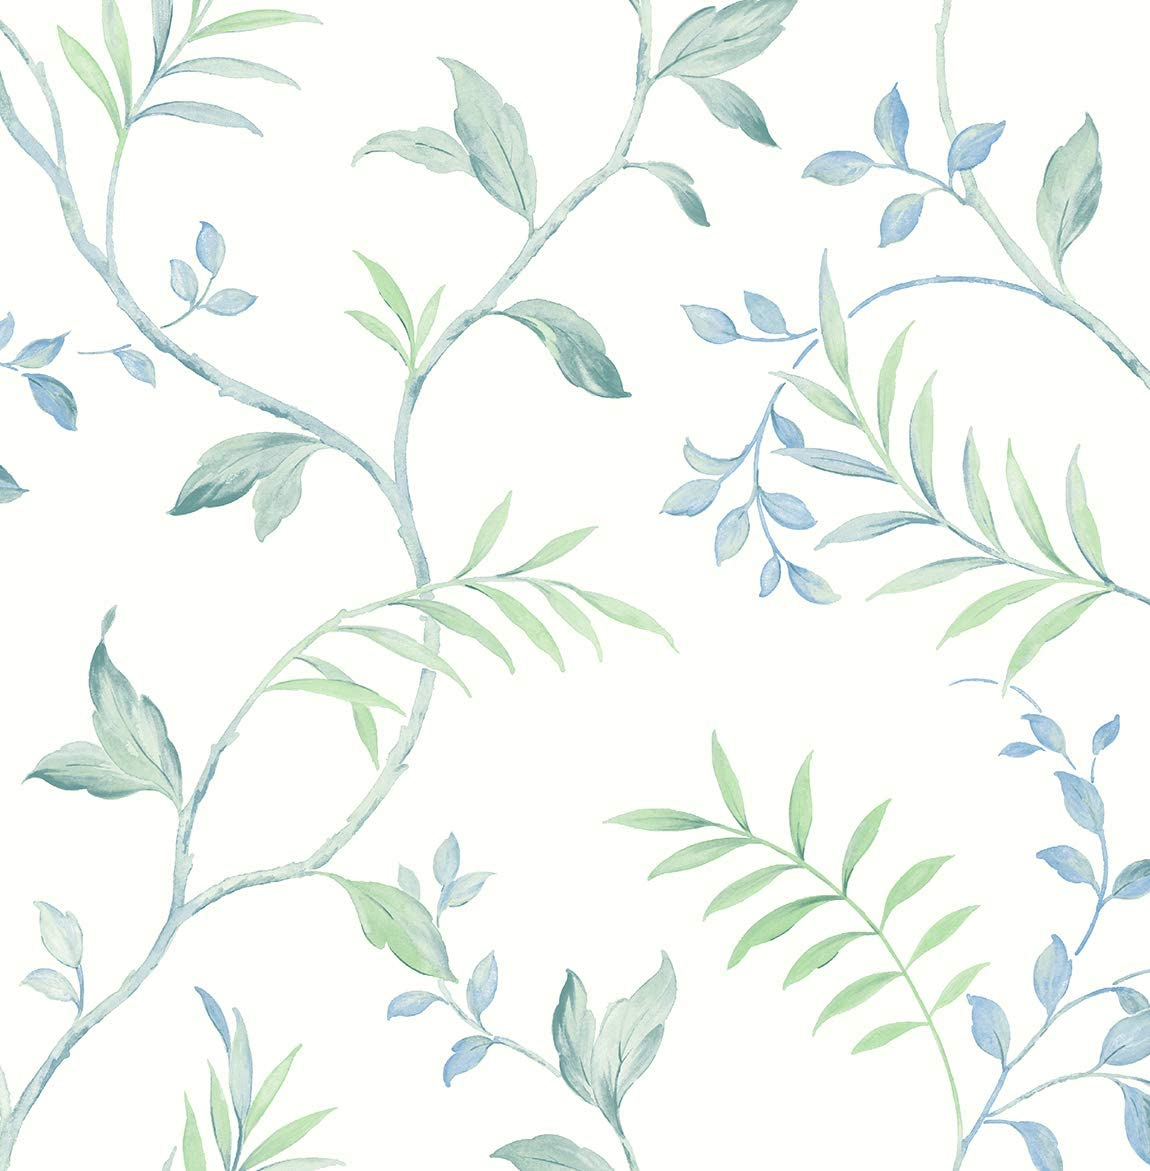 NextWall Watercolor Leaf Trail unisex and Peel Stick Super special price Wallpaper